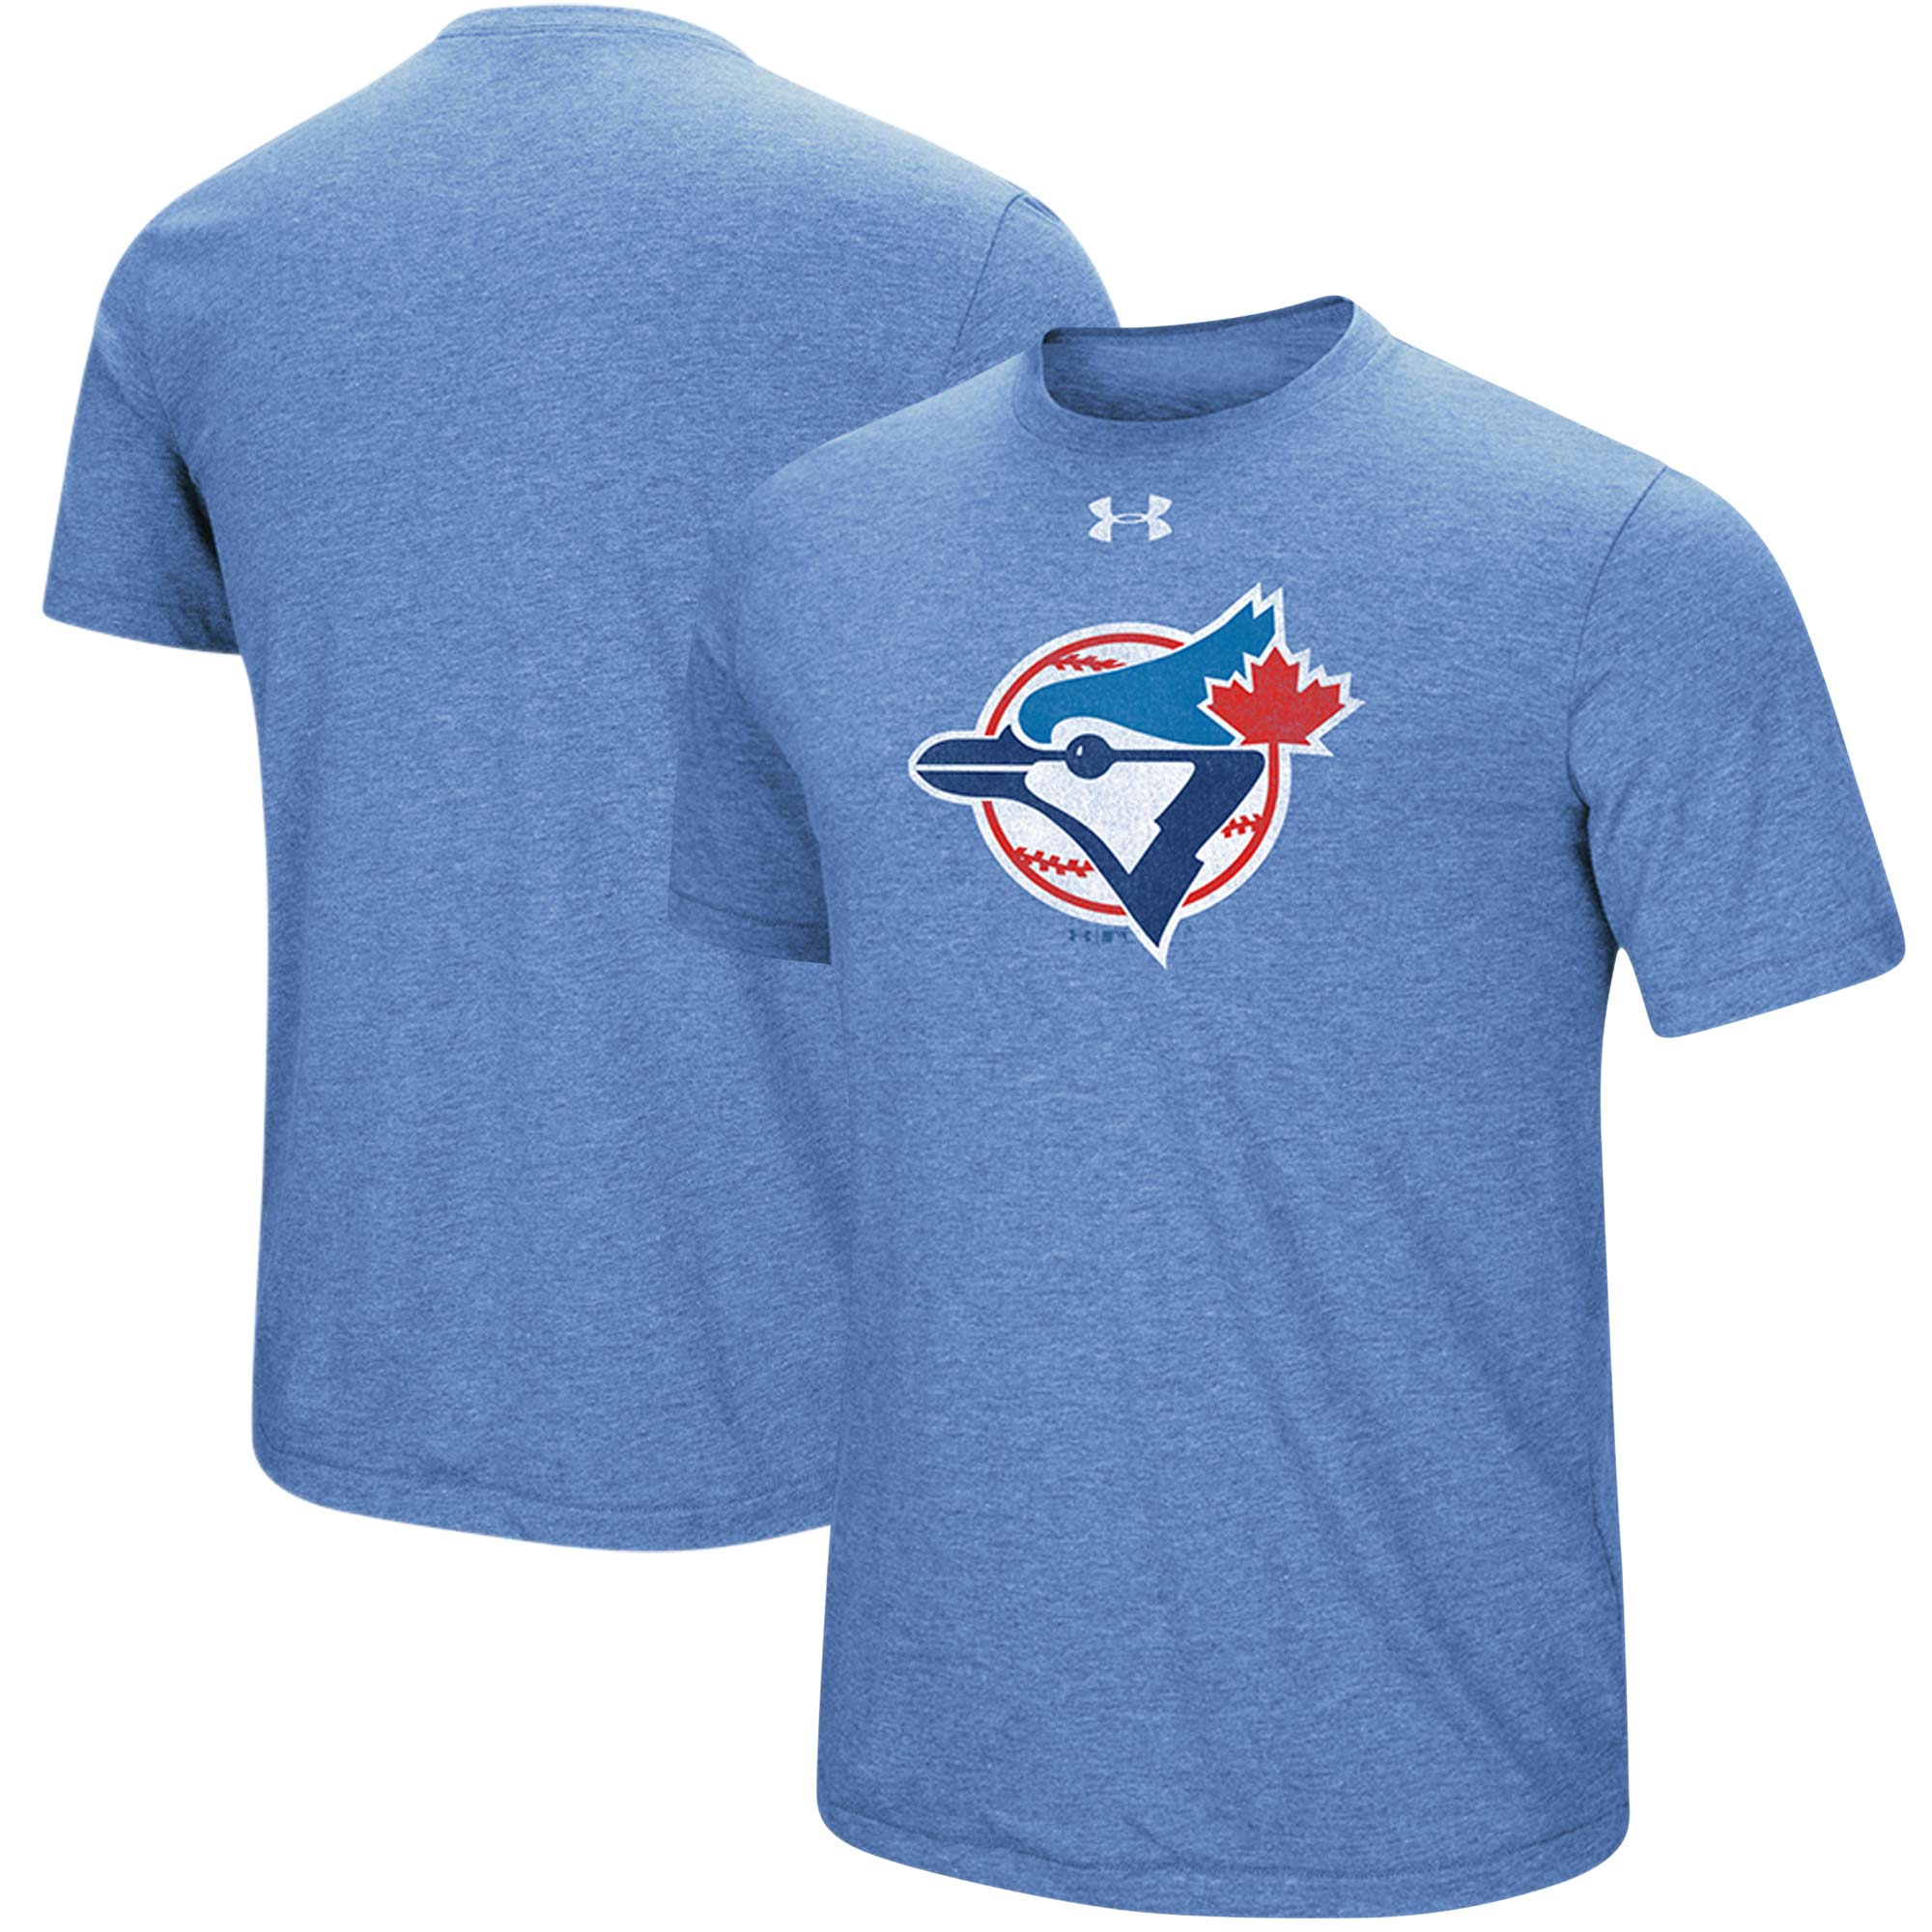 Toronto Blue Jays Under Armour Cooperstown Collection Mark Performance Tri-Blend T-Shirt - Heathered Royal